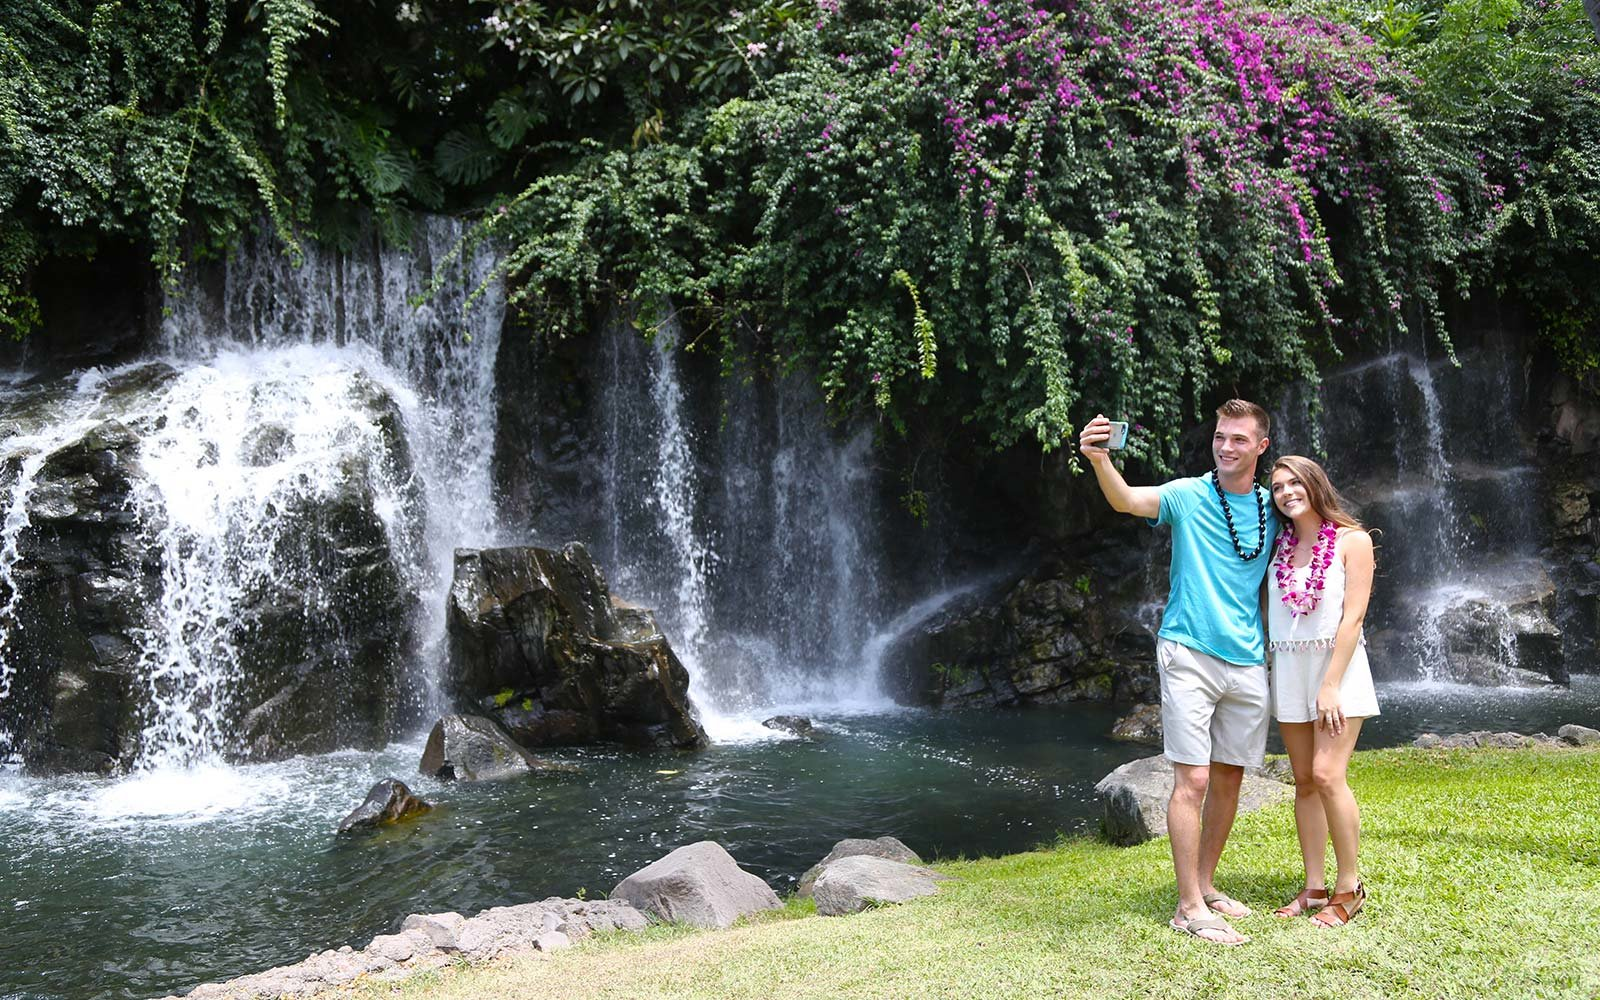 Where to find single men in maui - Maui Forum - TripAdvisor